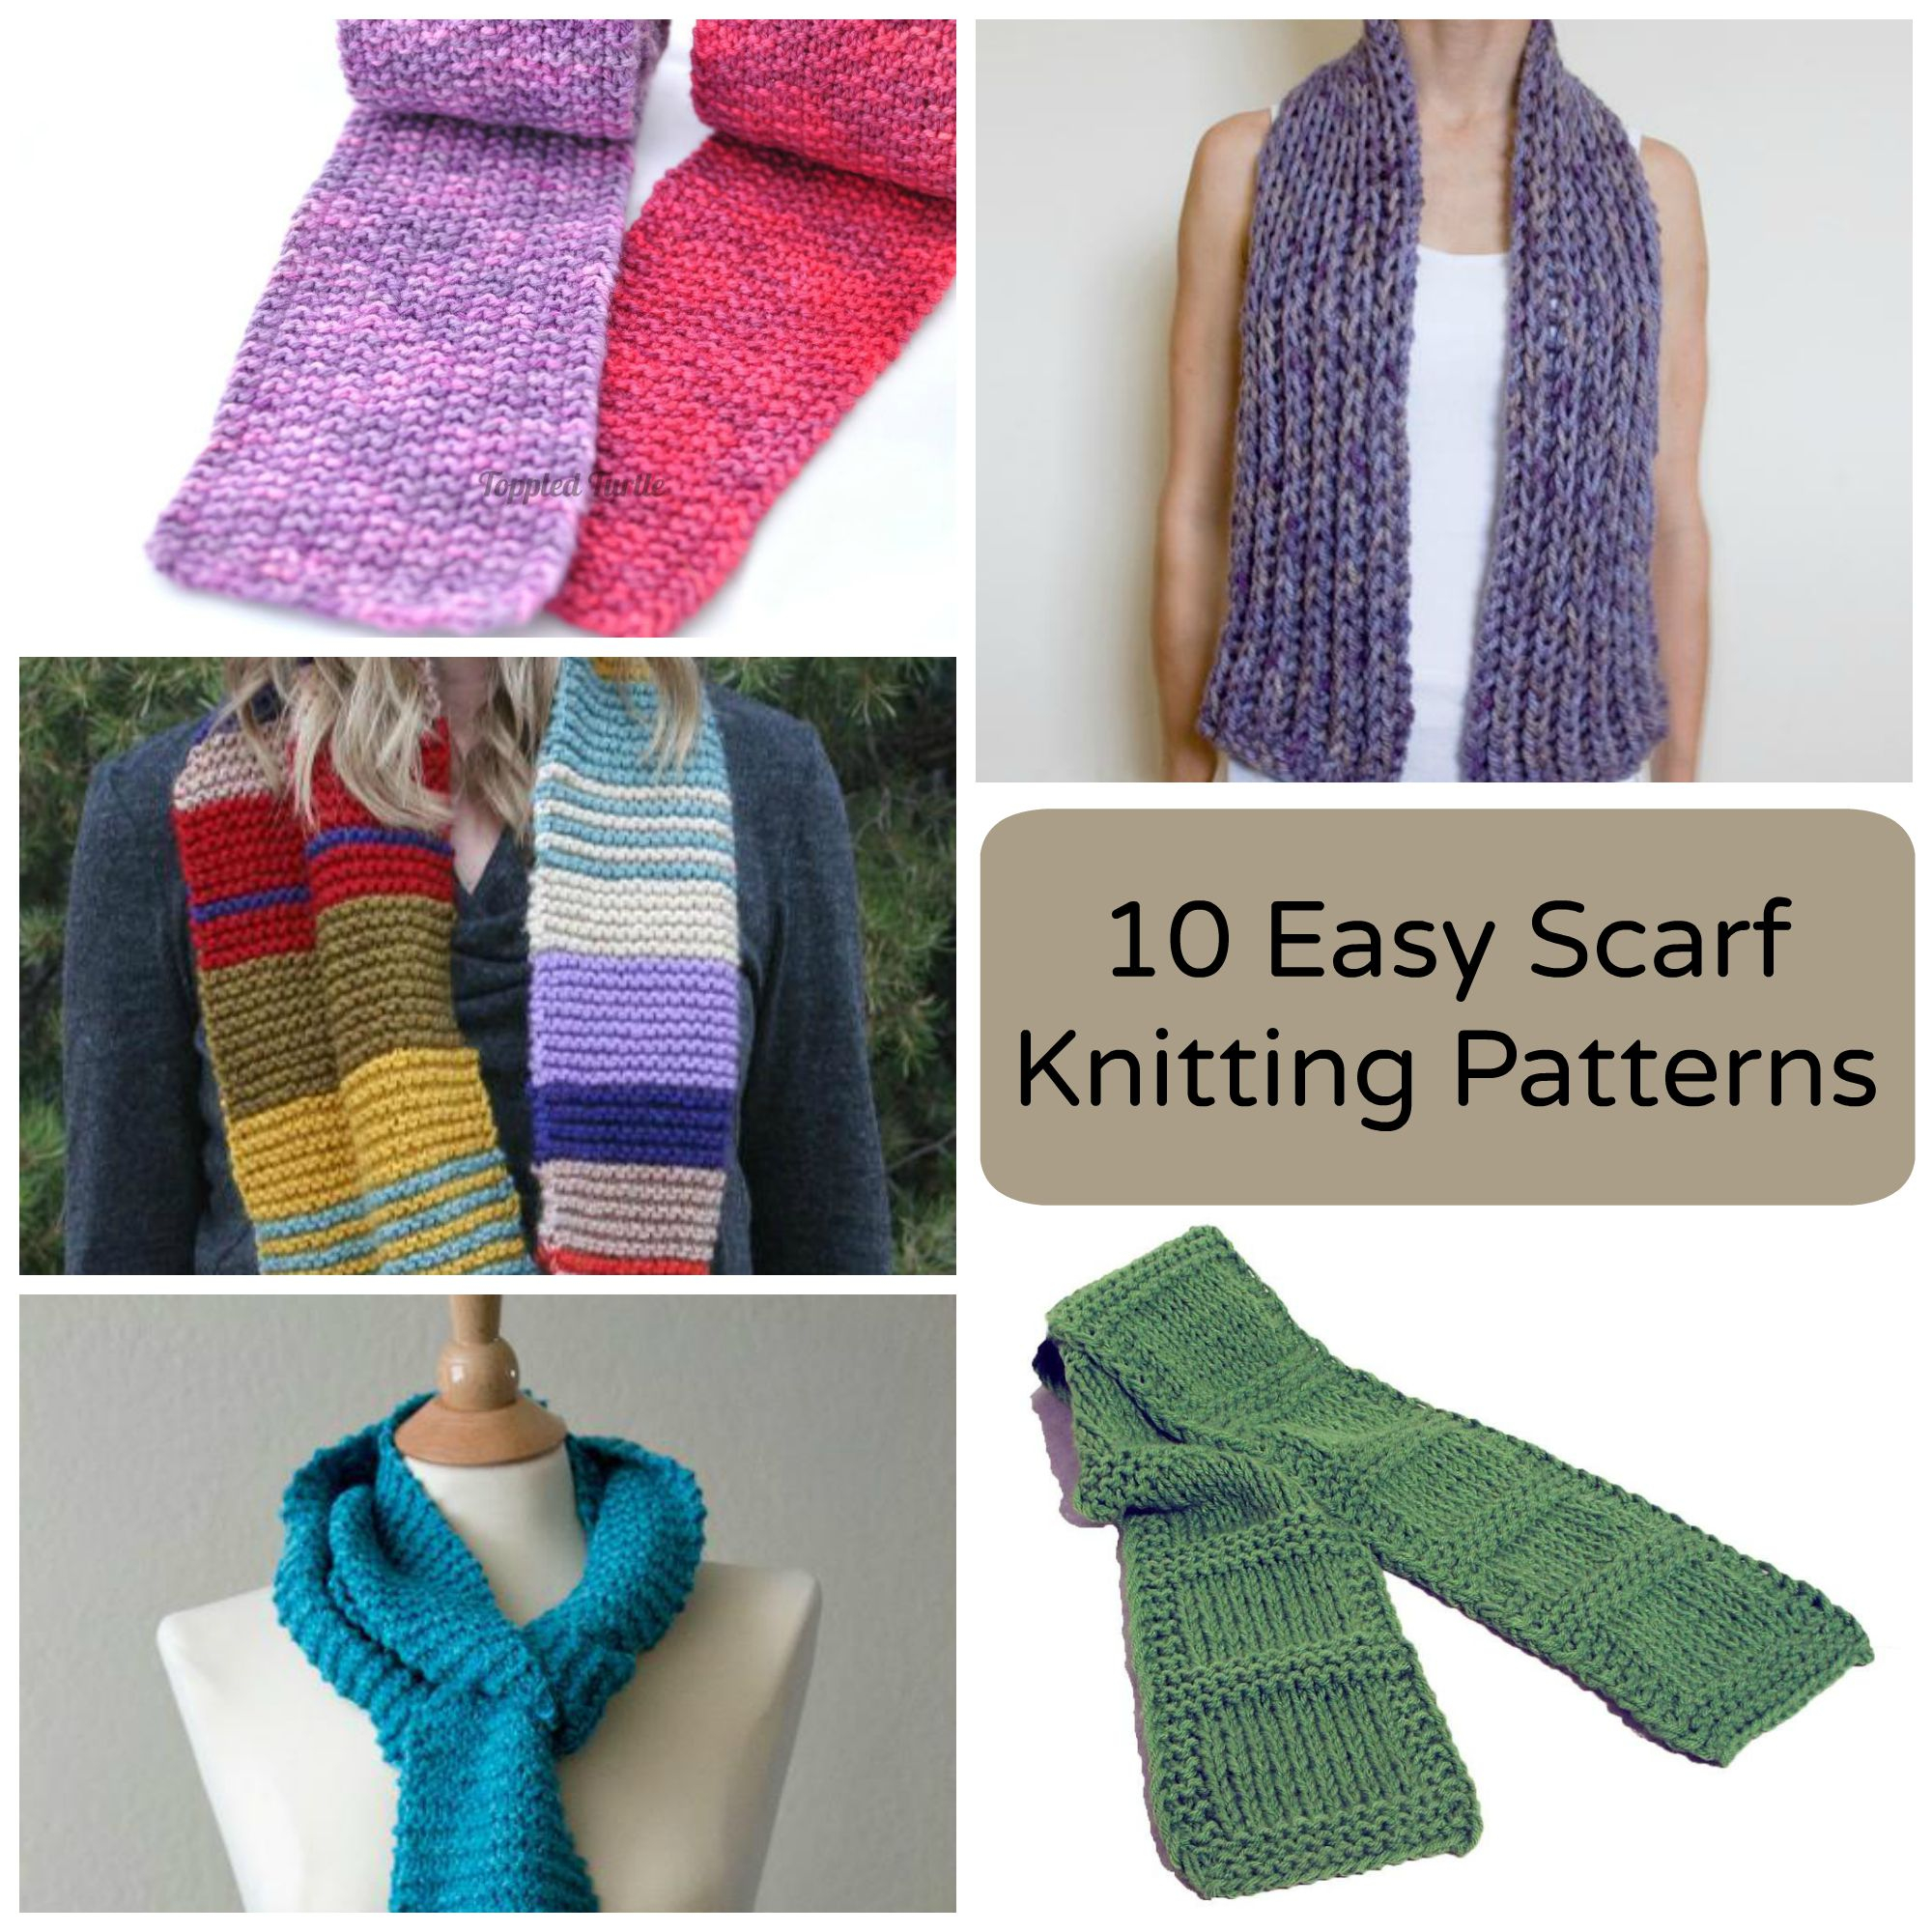 Scarf Patterns Knitting Beginner Knit A Scarf Selecting A Design From Knitted Scarf Patterns